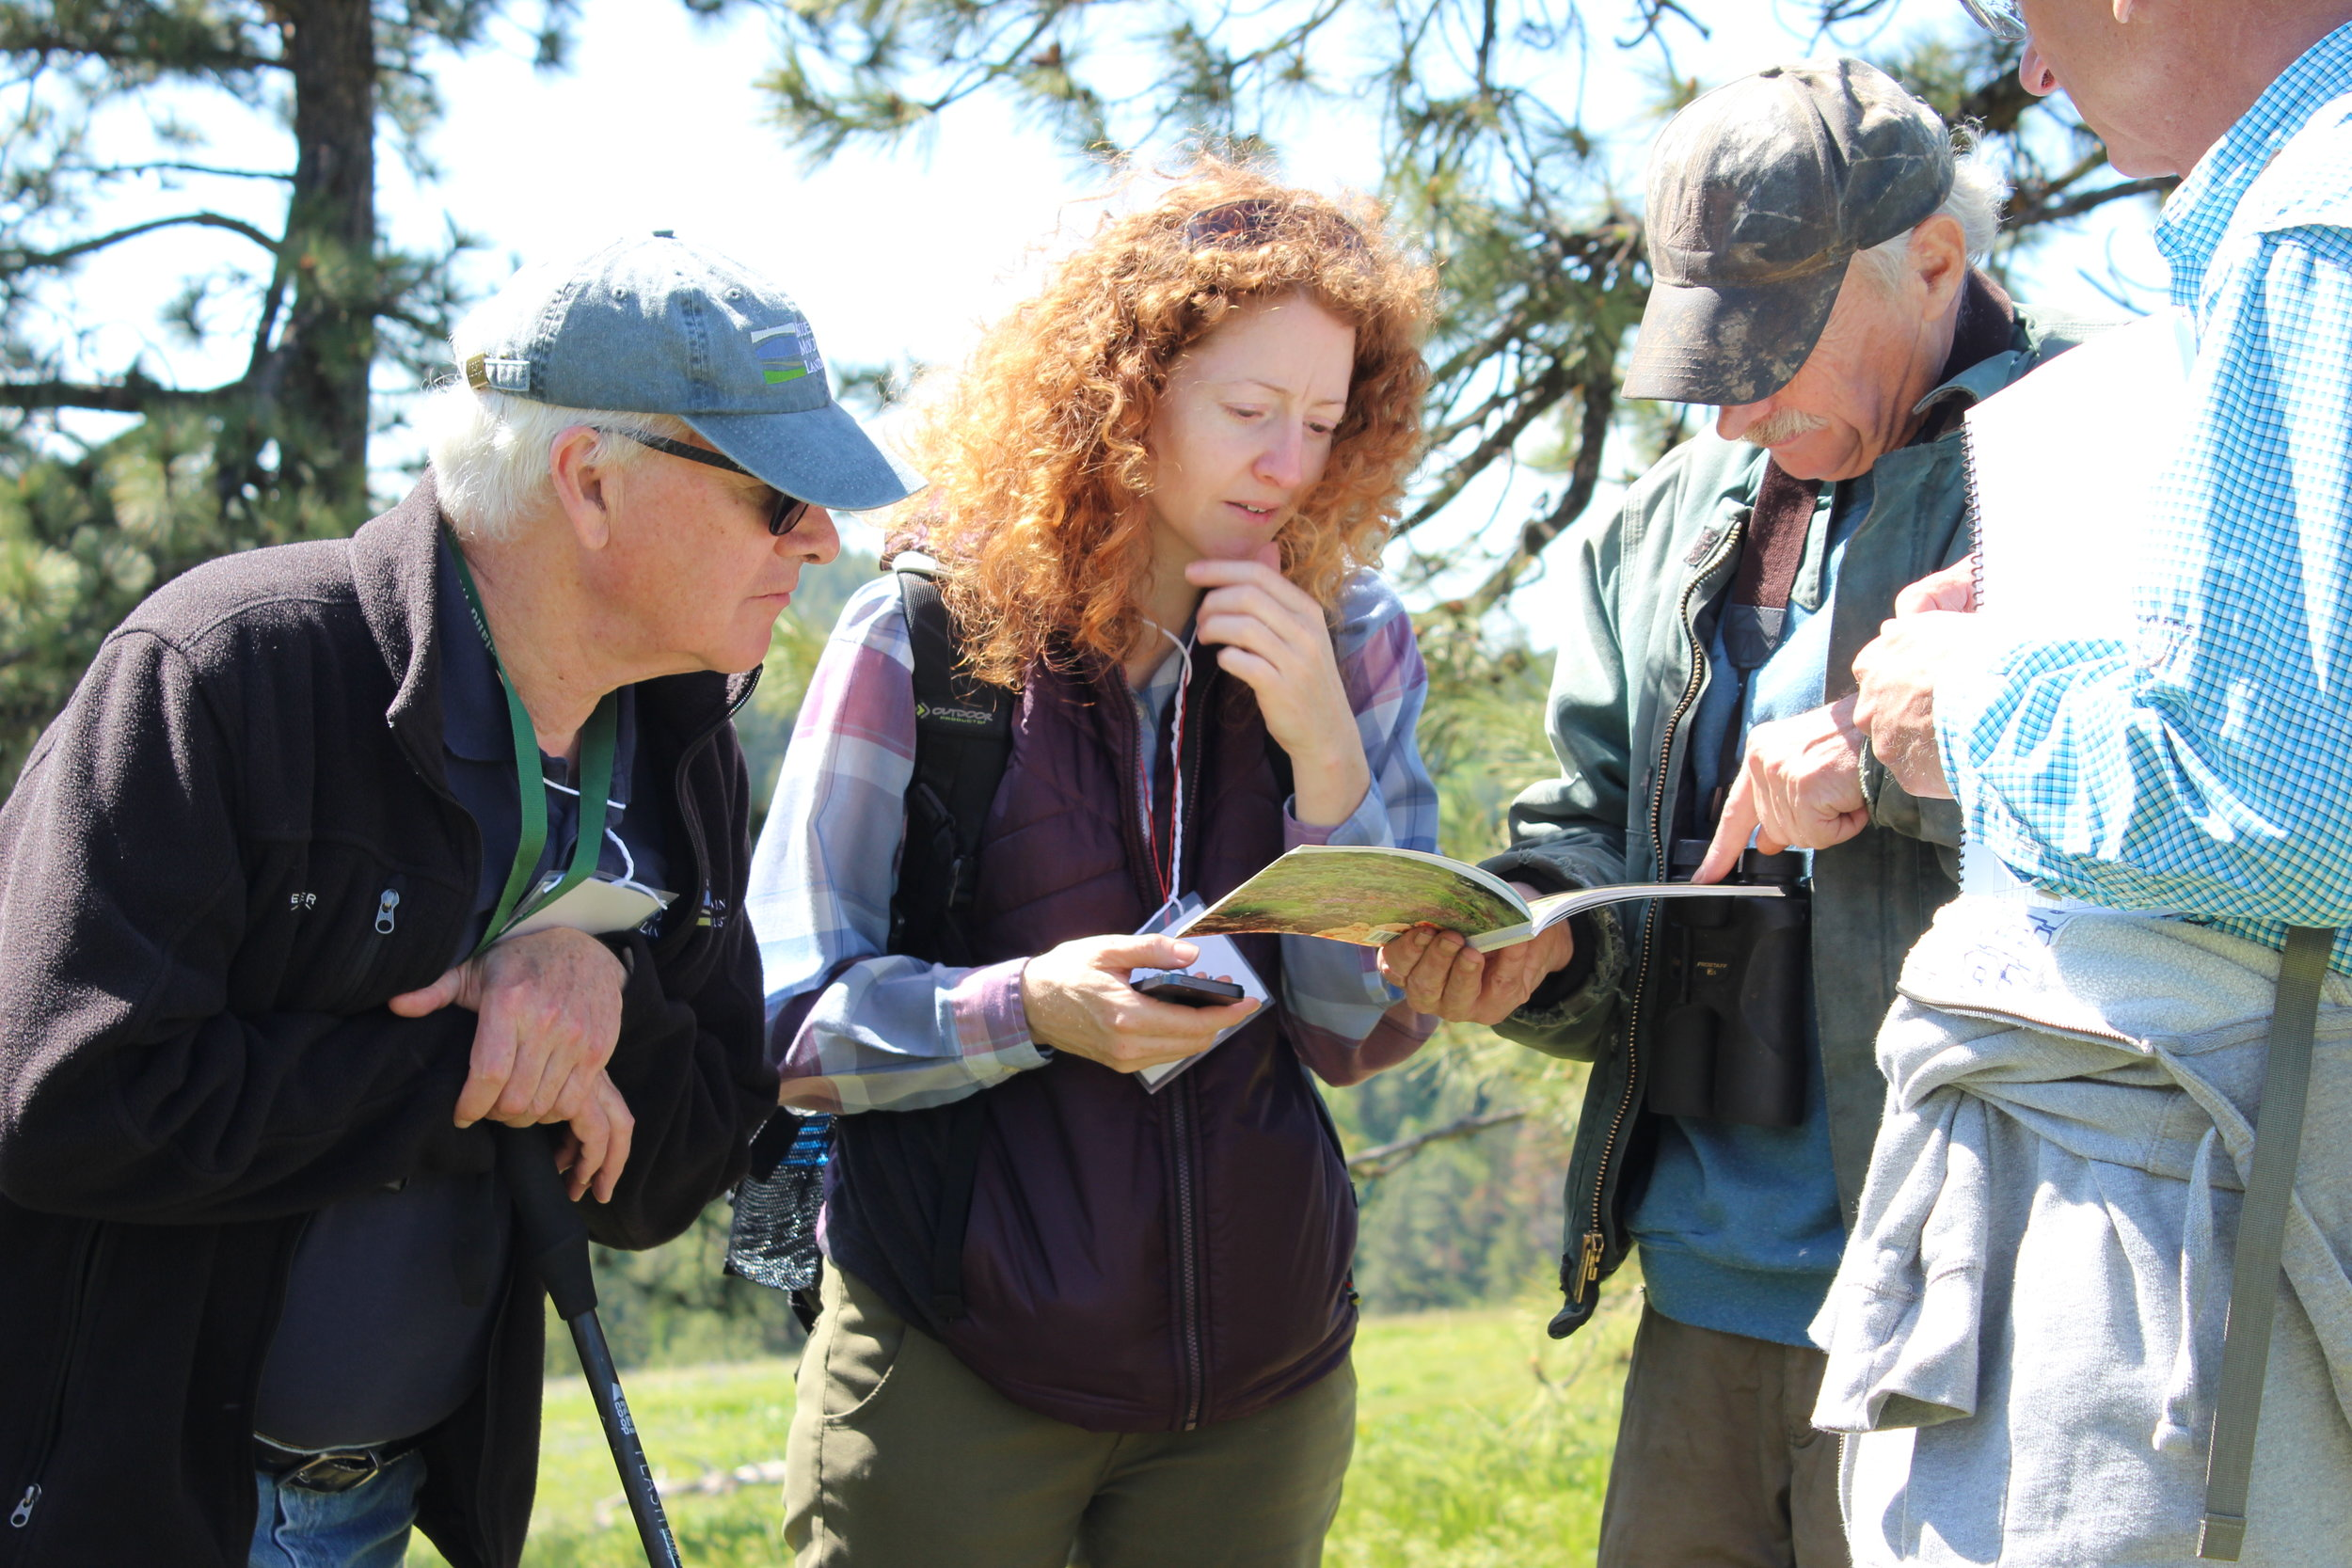 Explore Nature With an Expert Guide - Scientists will lead you on a special informative tour, pointing out the special natural attractions around Fort Walla Walla Natural Area.Photo by Rick Pummel.